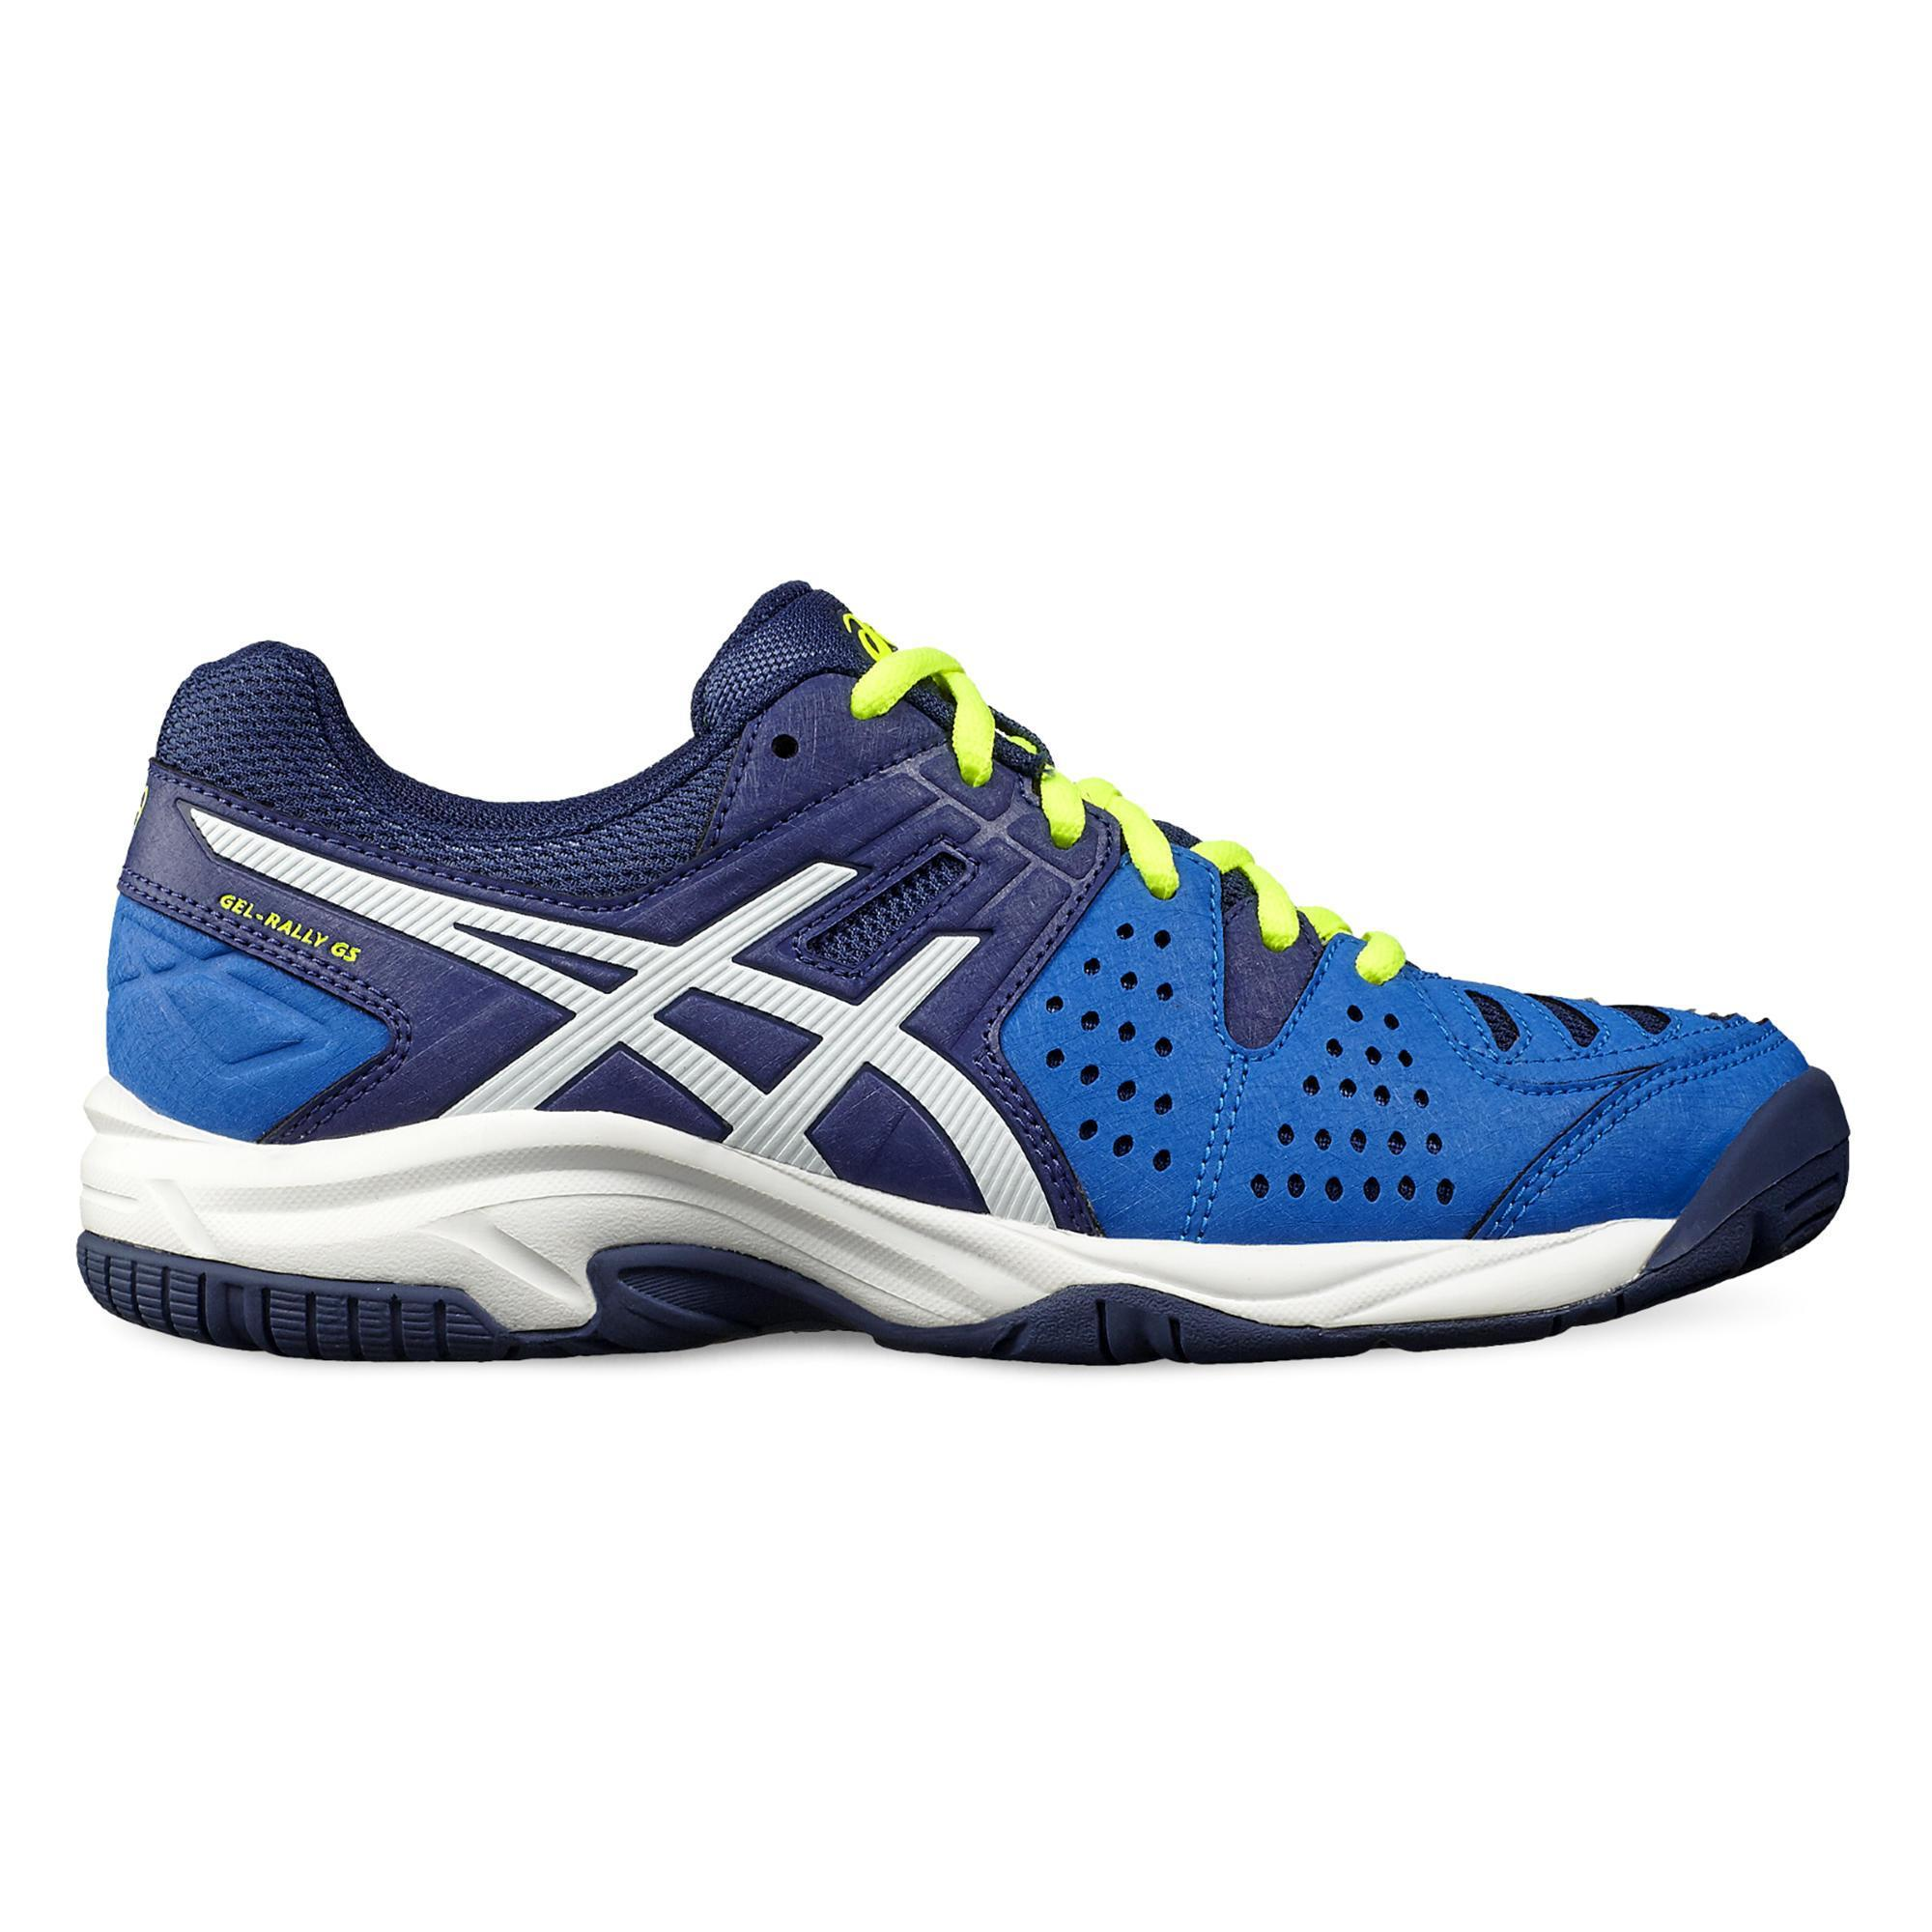 Asics - Decathlon